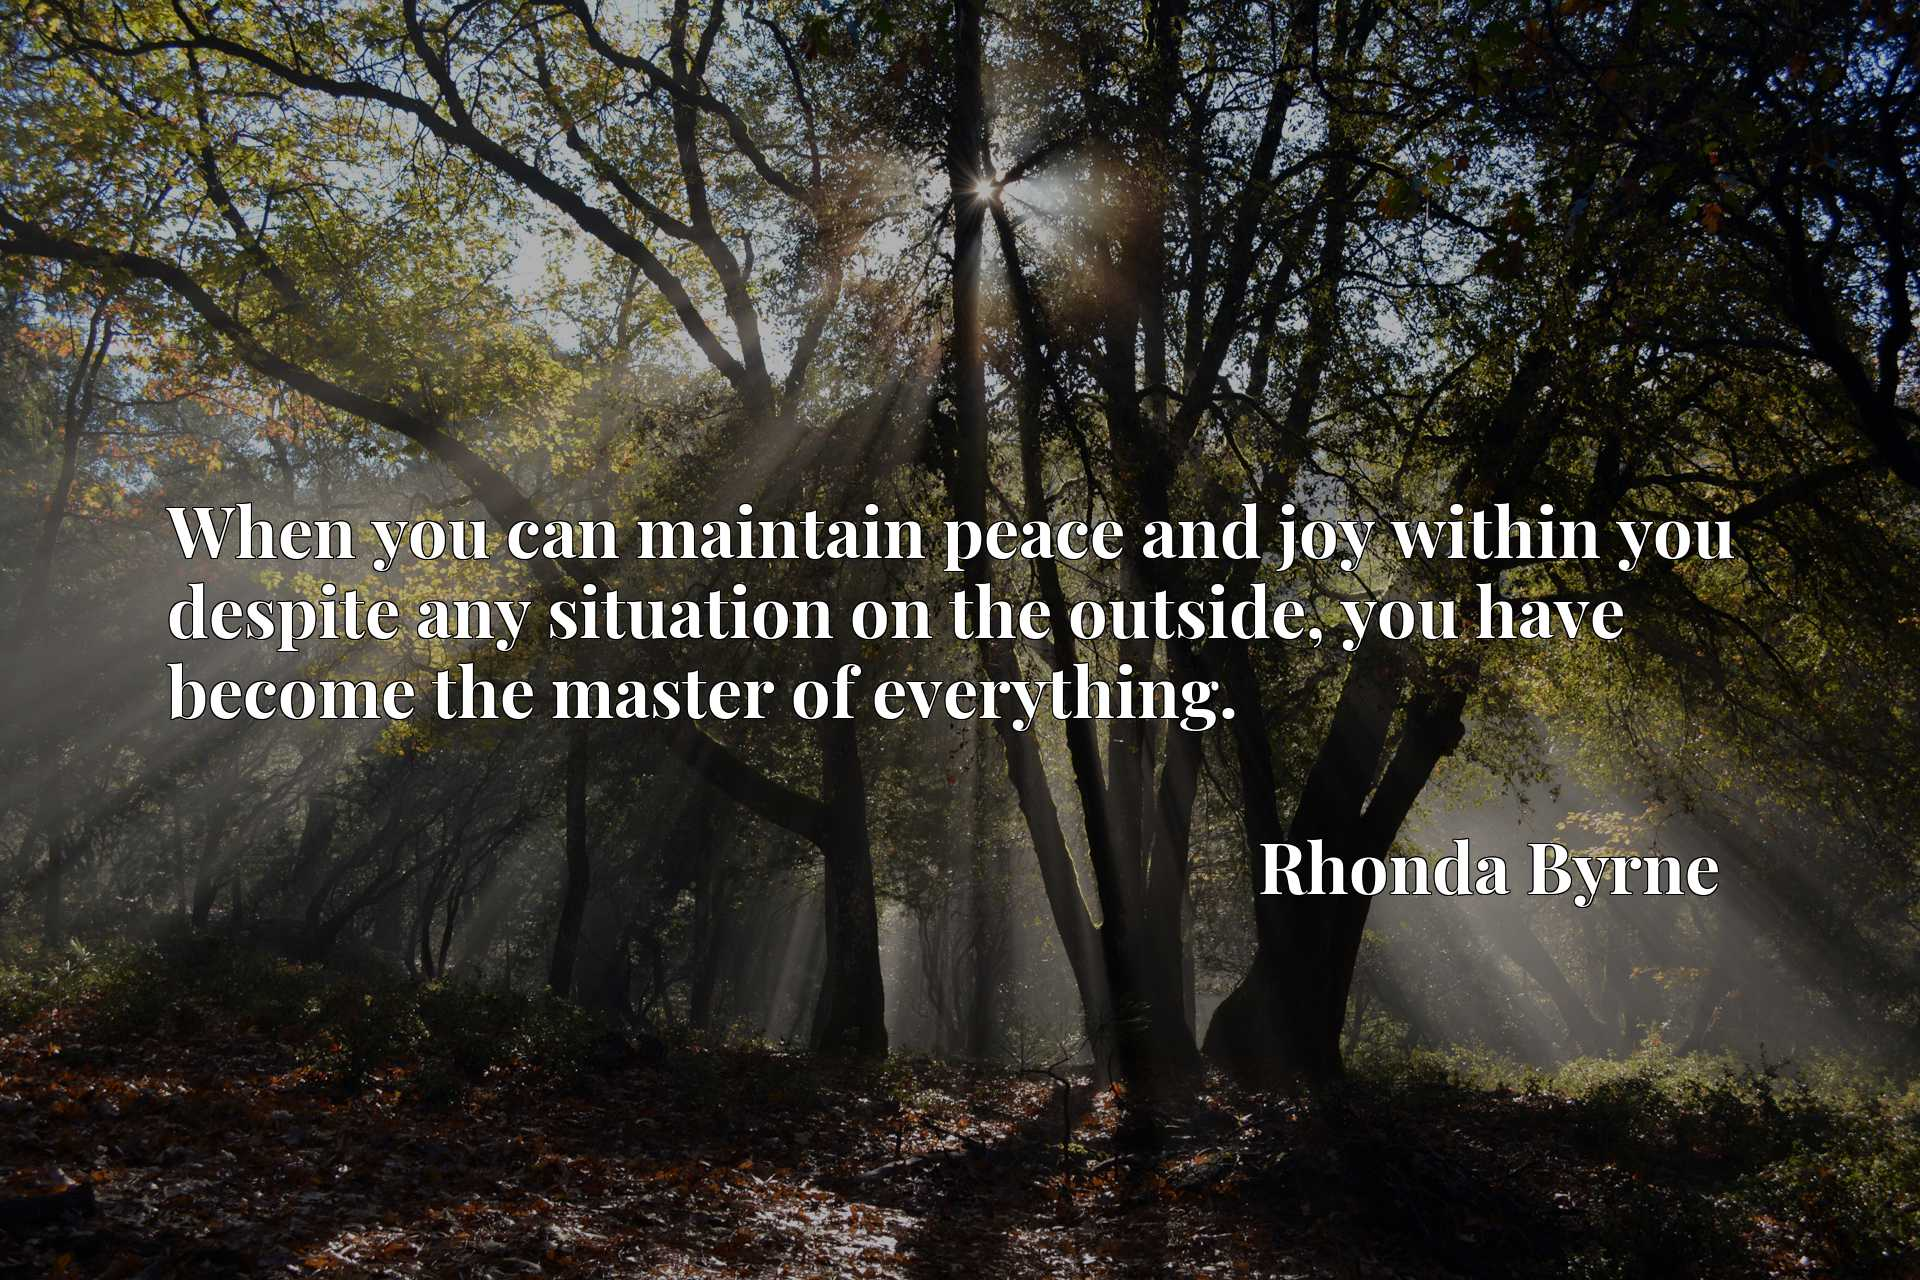 Quote Picture :When you can maintain peace and joy within you despite any situation on the outside, you have become the master of everything.